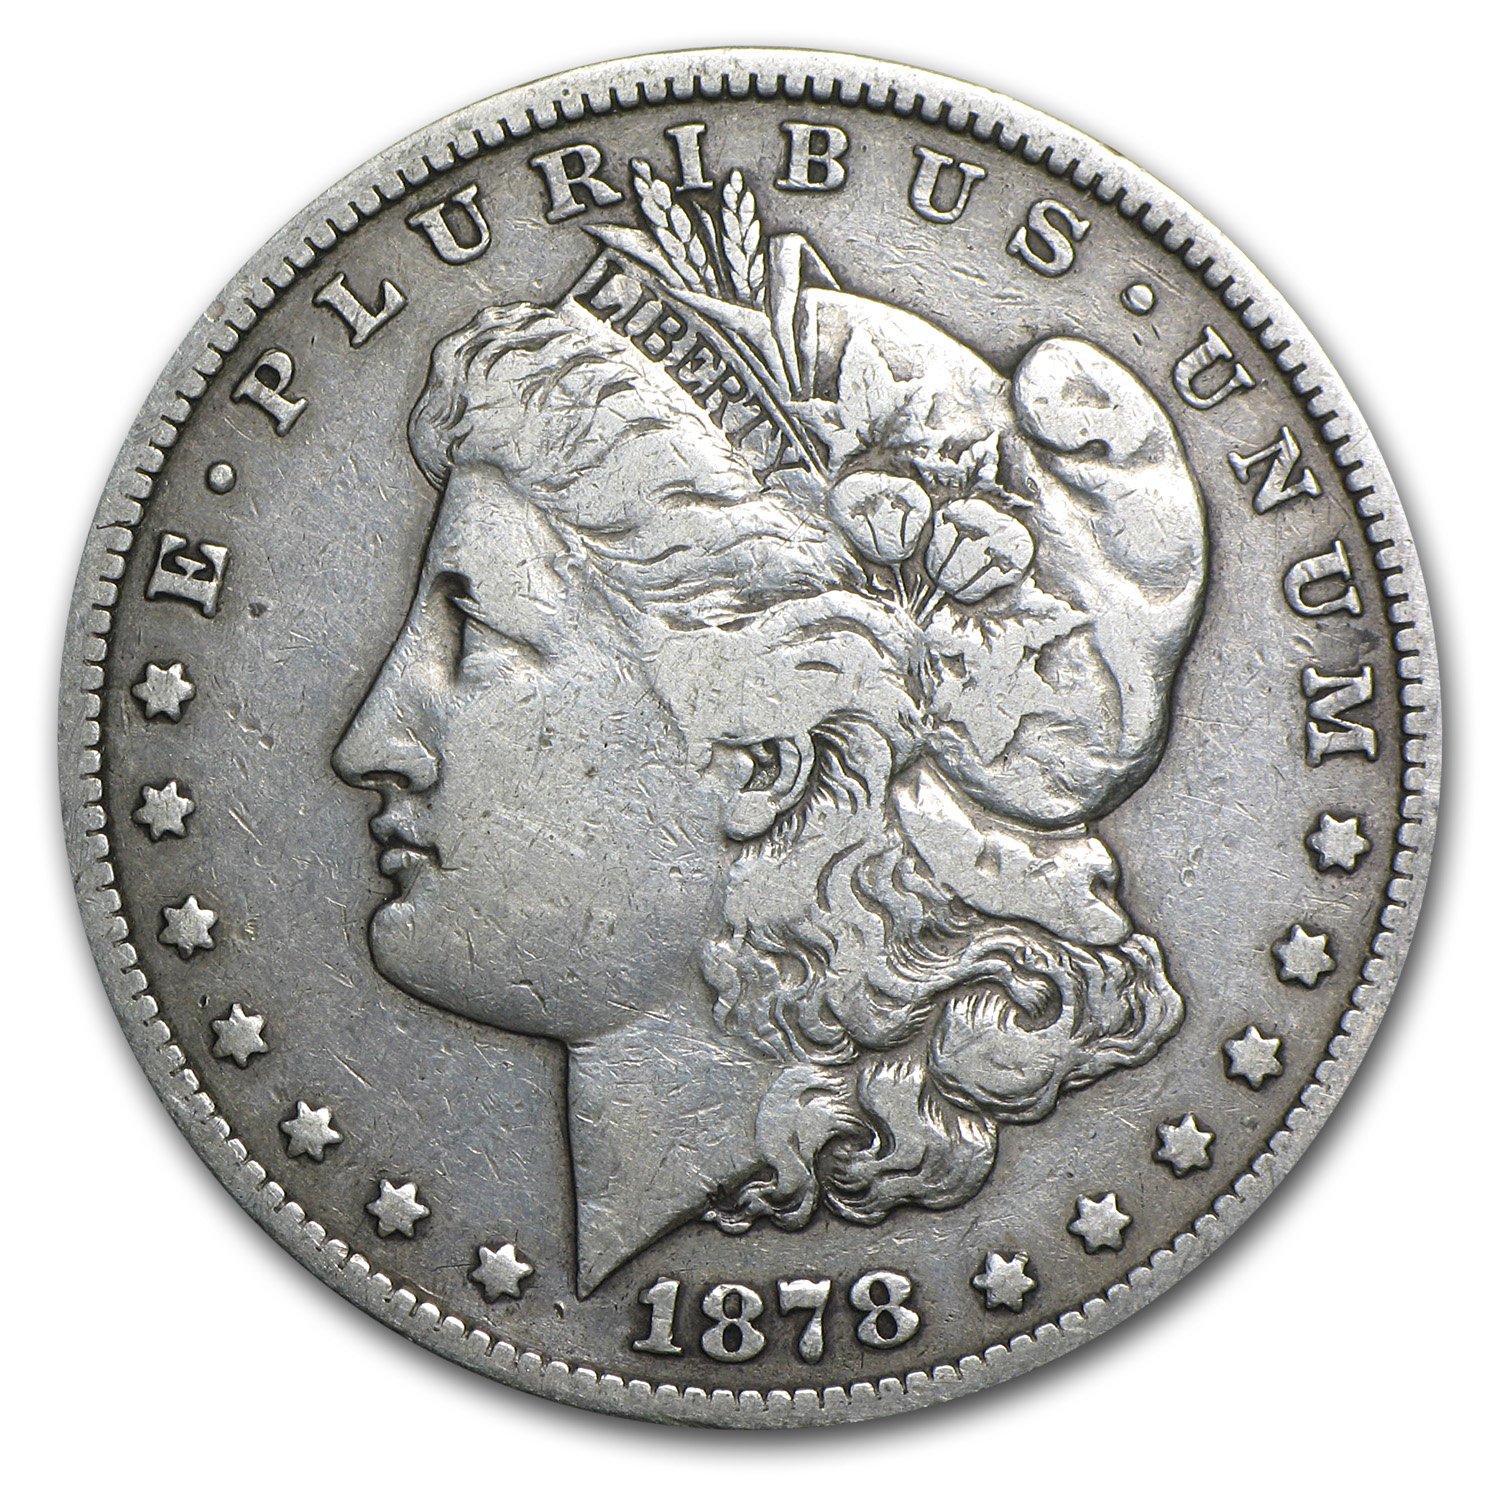 1878-S Morgan Dollar - Very Fine - VAM-27 Long Nock Top-100